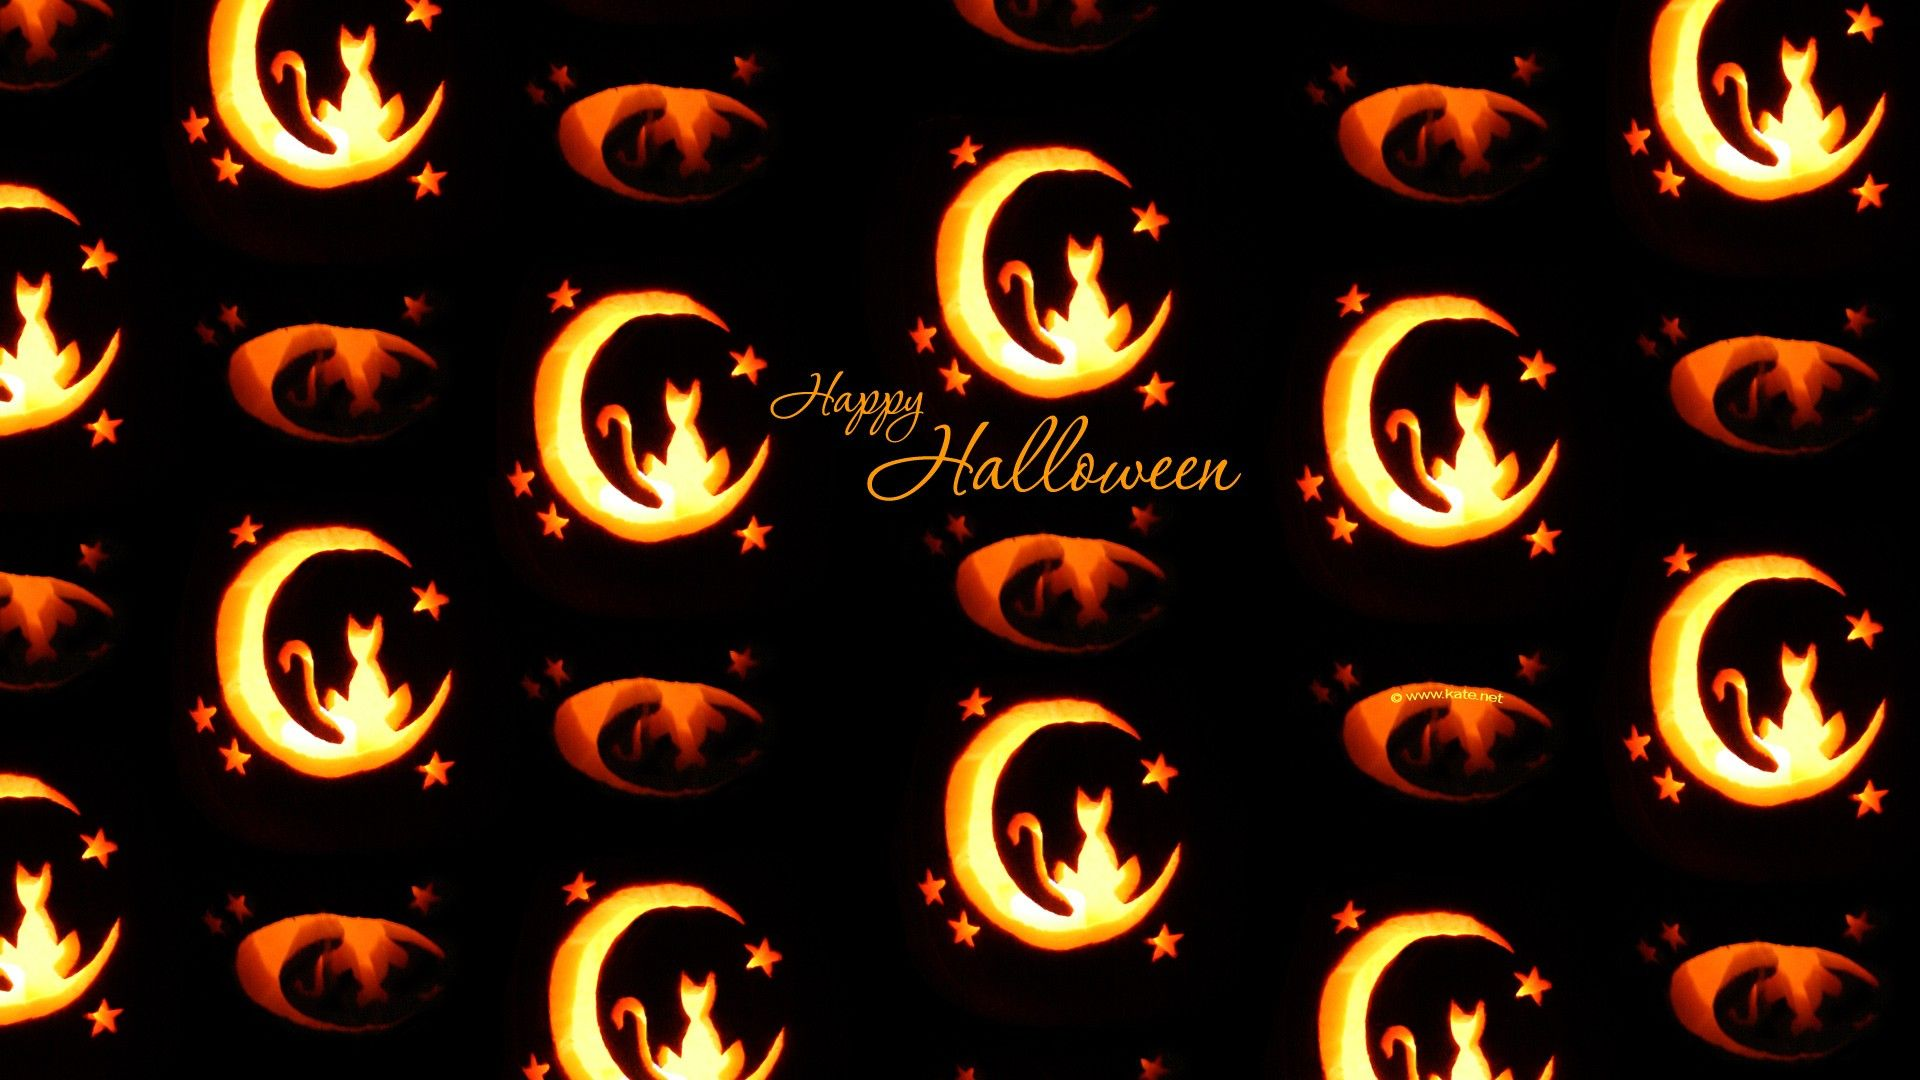 Happy Halloween 2014 Pics Wallpapers Pc Free Download Frohliches Halloween